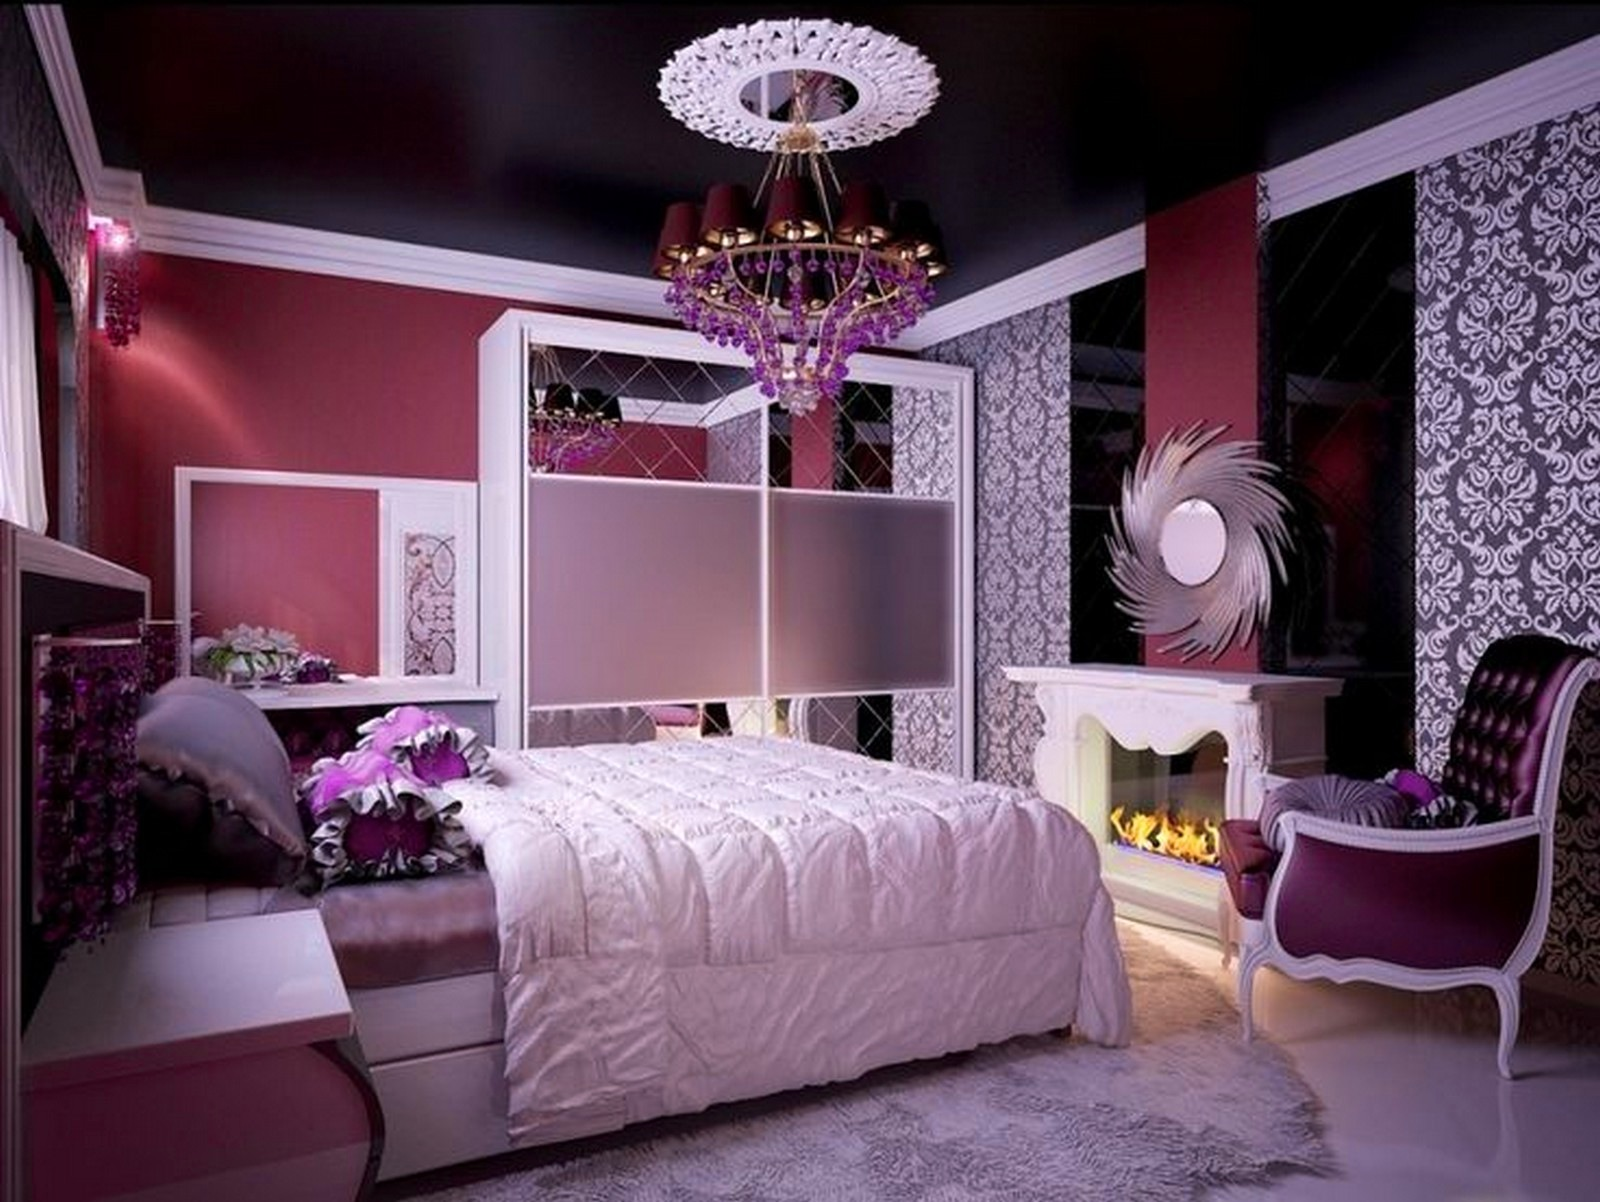 purple-flower-motive-bedroom-decoration-white-sheets-bed-chandelier-shof-tennege-color-scheme-blue-small-curtains-pink-large-size-pendats-fur-rug-ideas-teenege-rugs-round-table-pillow